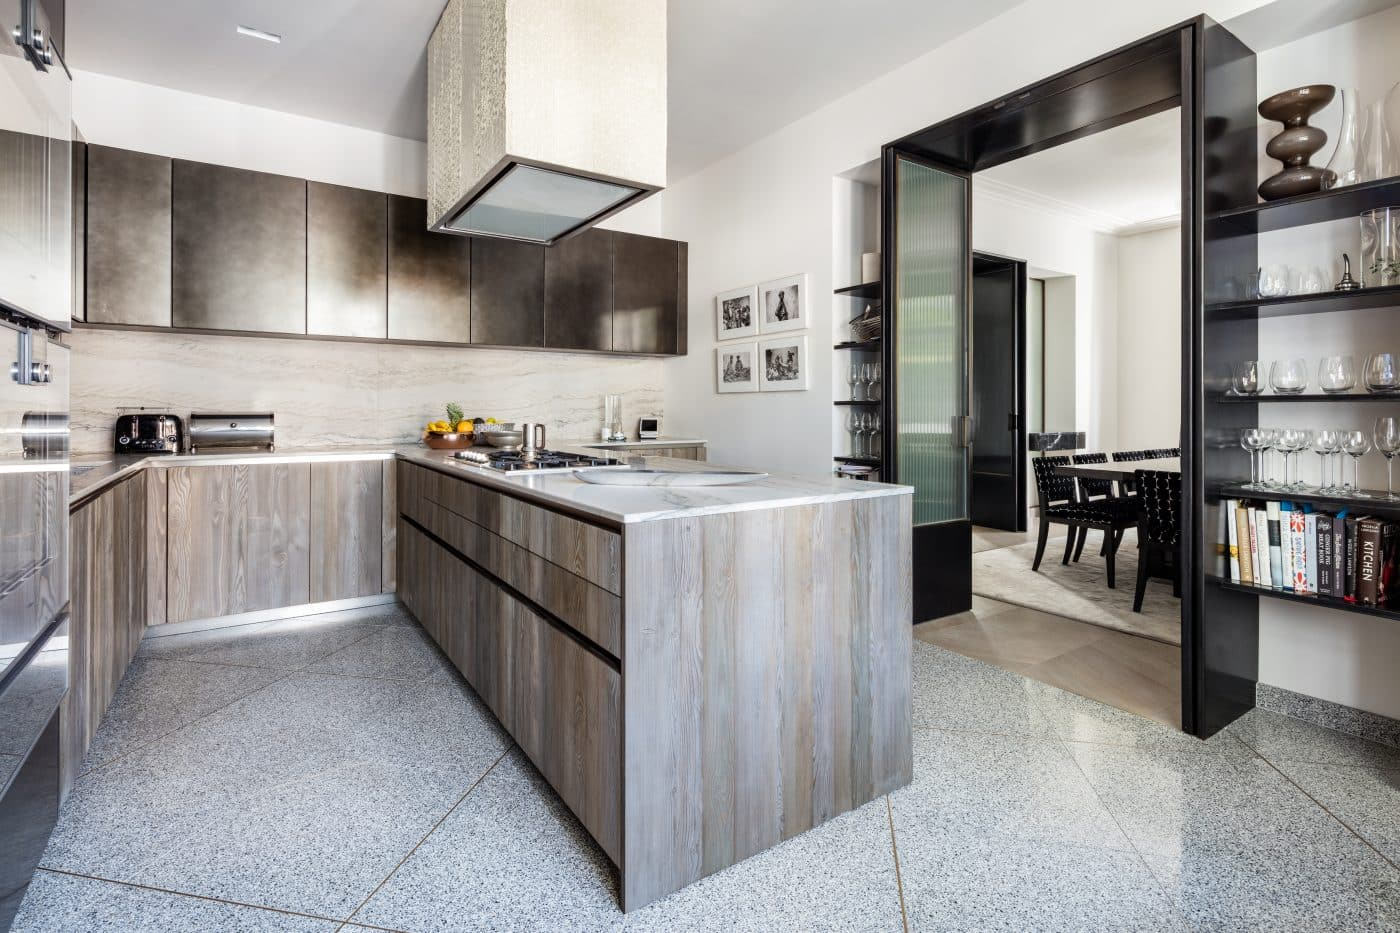 Kitchen of the London home